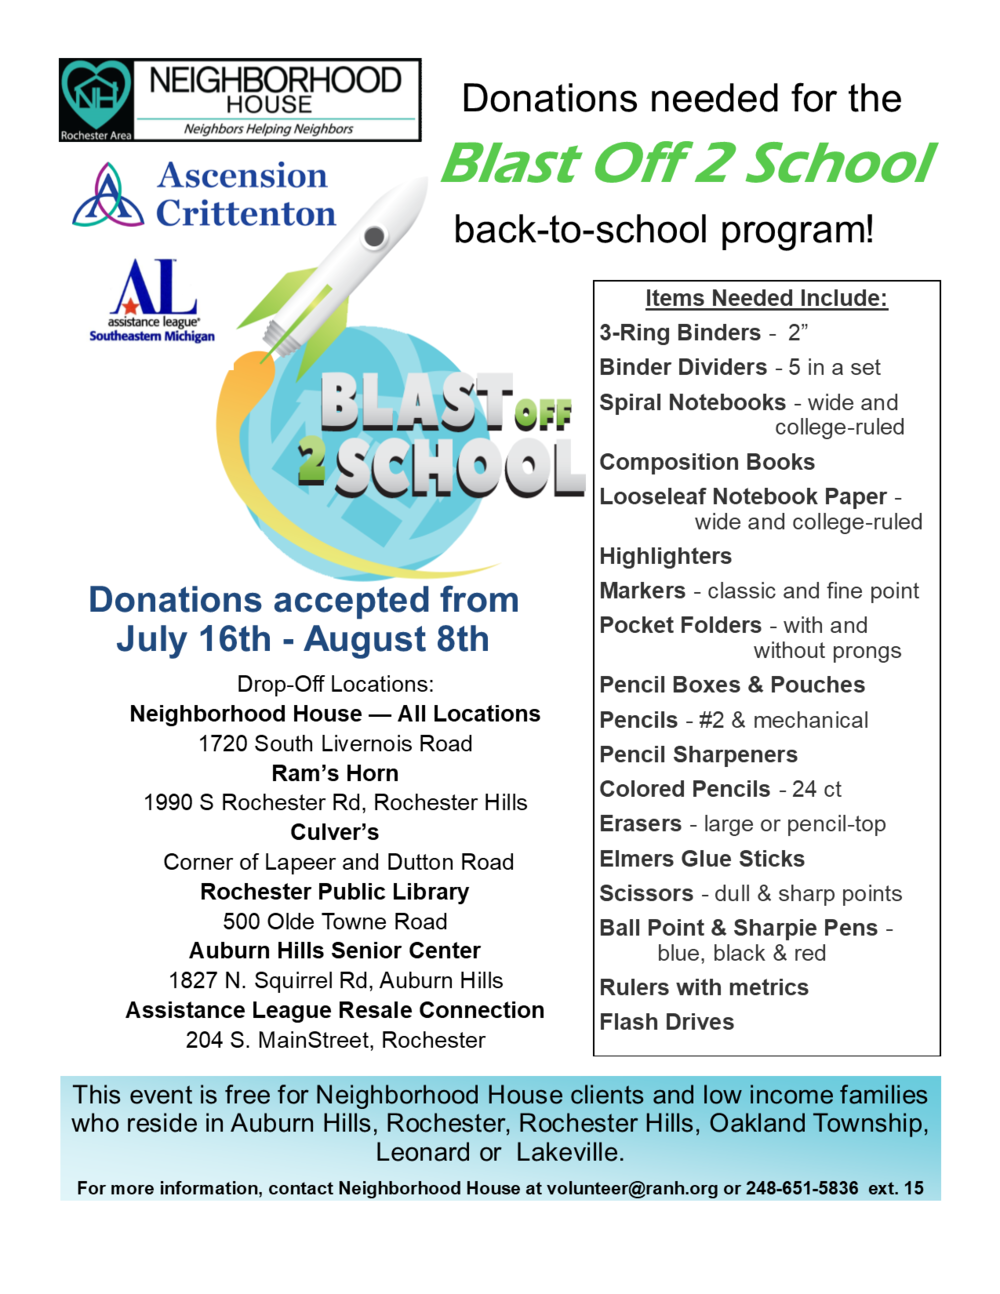 Donations needed for our Blast Off 2 School program in partnership with Ascension Crittenton and Assistance League of Southeastern Michigan! For wish list and drop off information, please visit: https://www.ranh.org/wish-list/